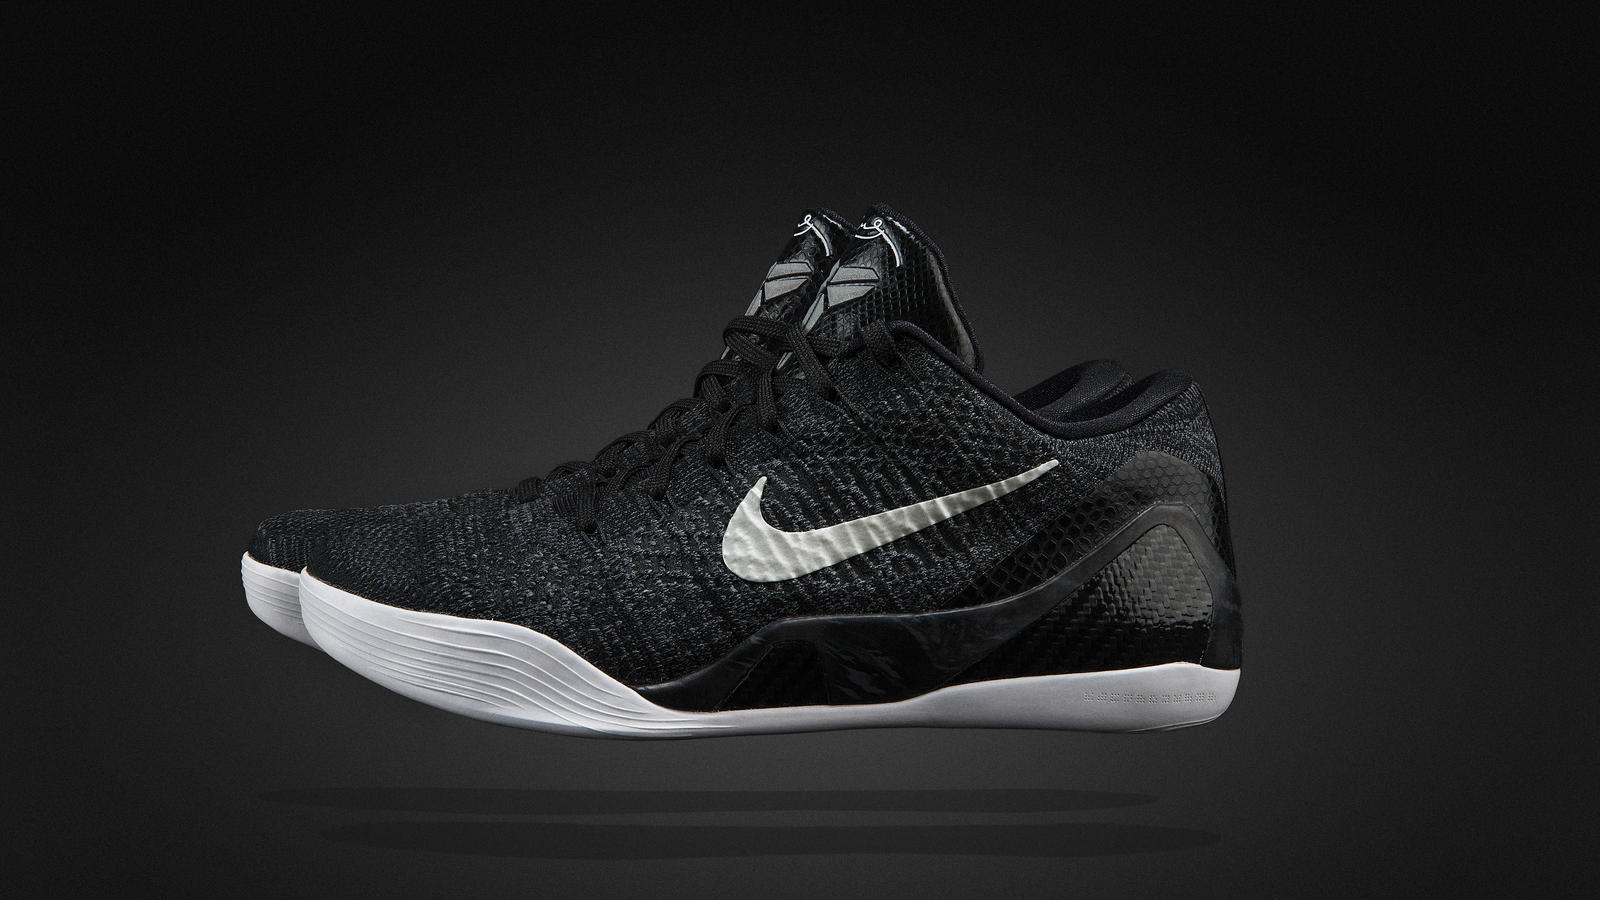 marble.htm the first of its kind kobe 9 elite low htm nike news  kobe 9 elite low htm